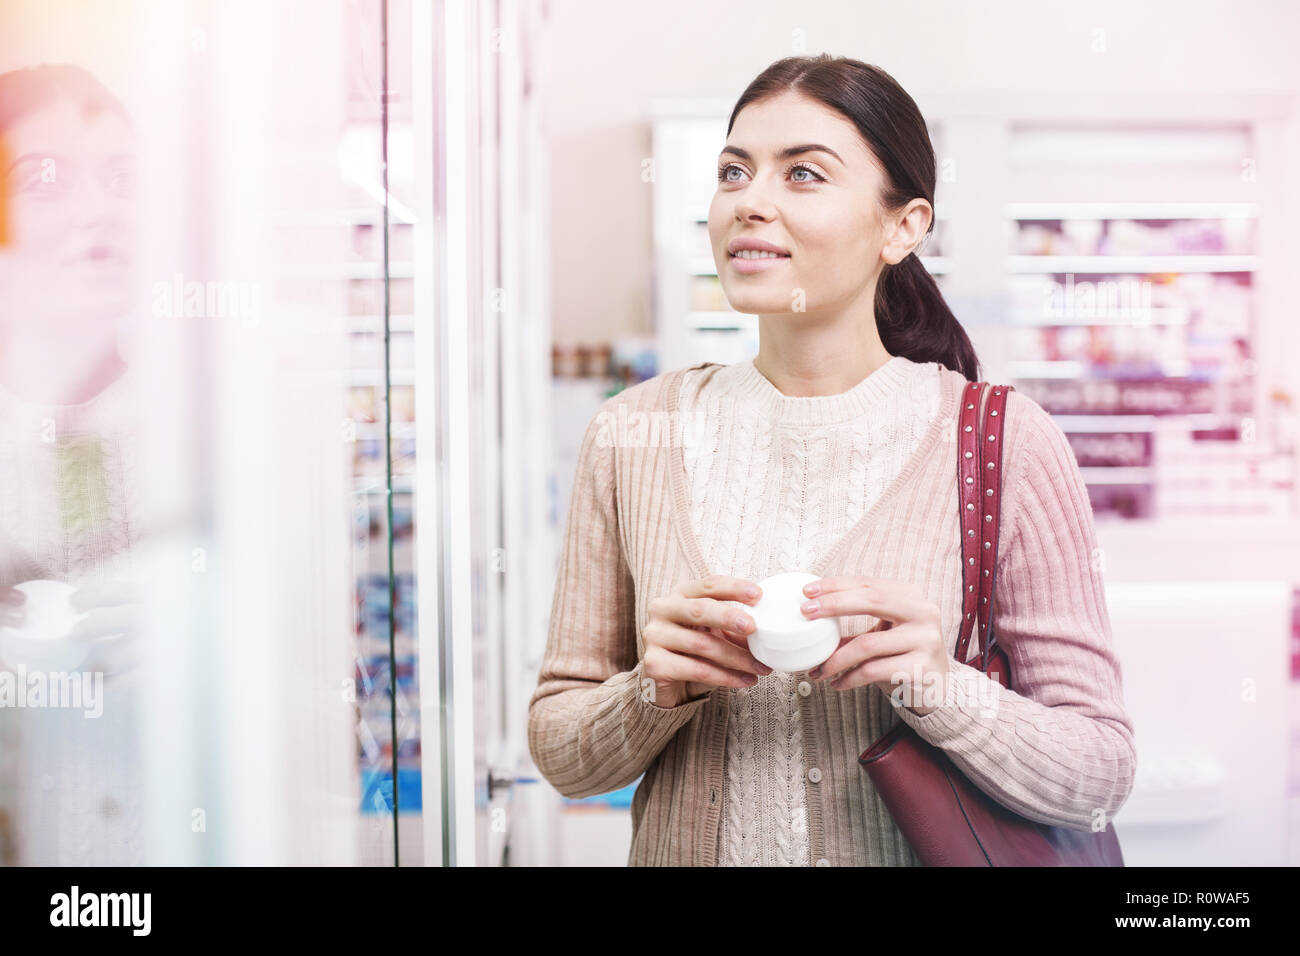 Customer searching for wished item in a store - Stock Image